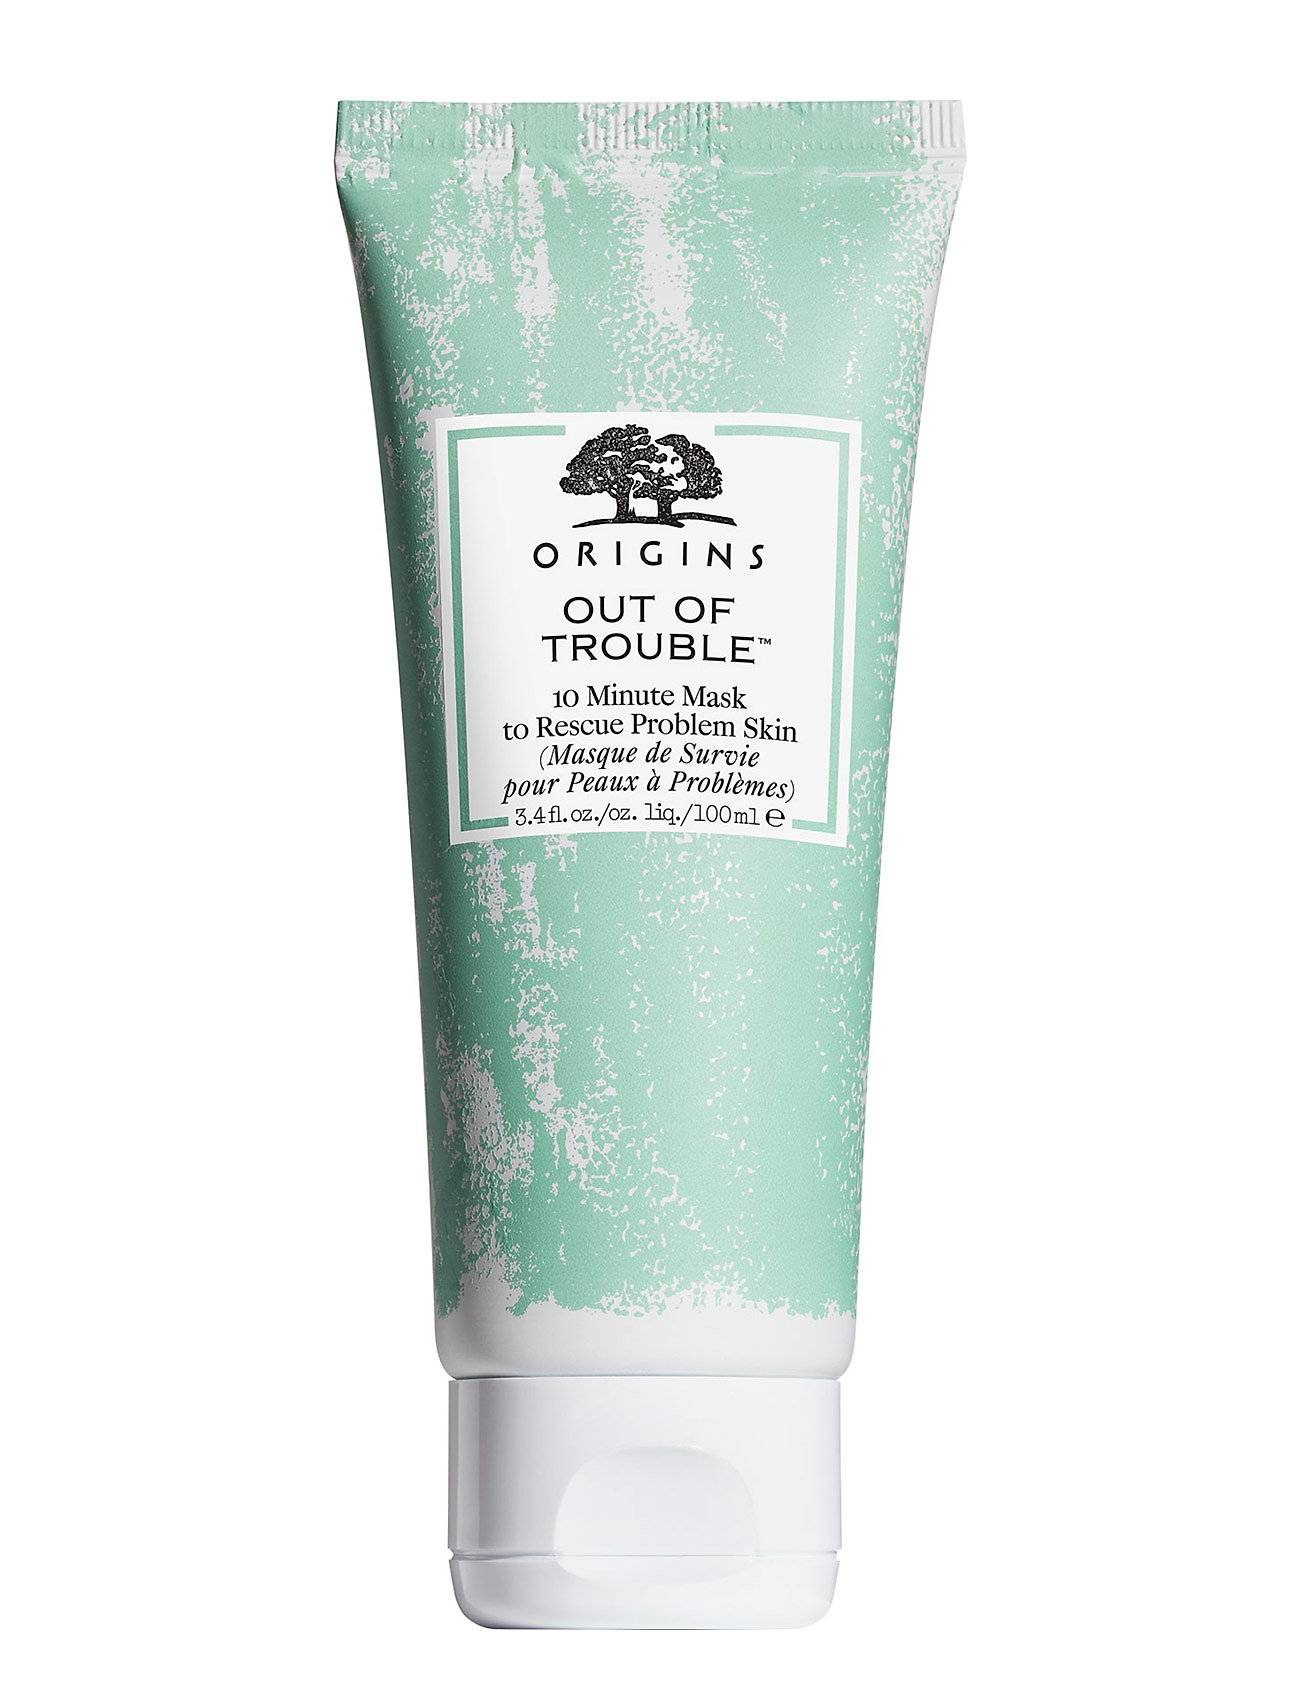 Origins Out Of Trouble® 10 Minute Mask To Rescue Problem Skin